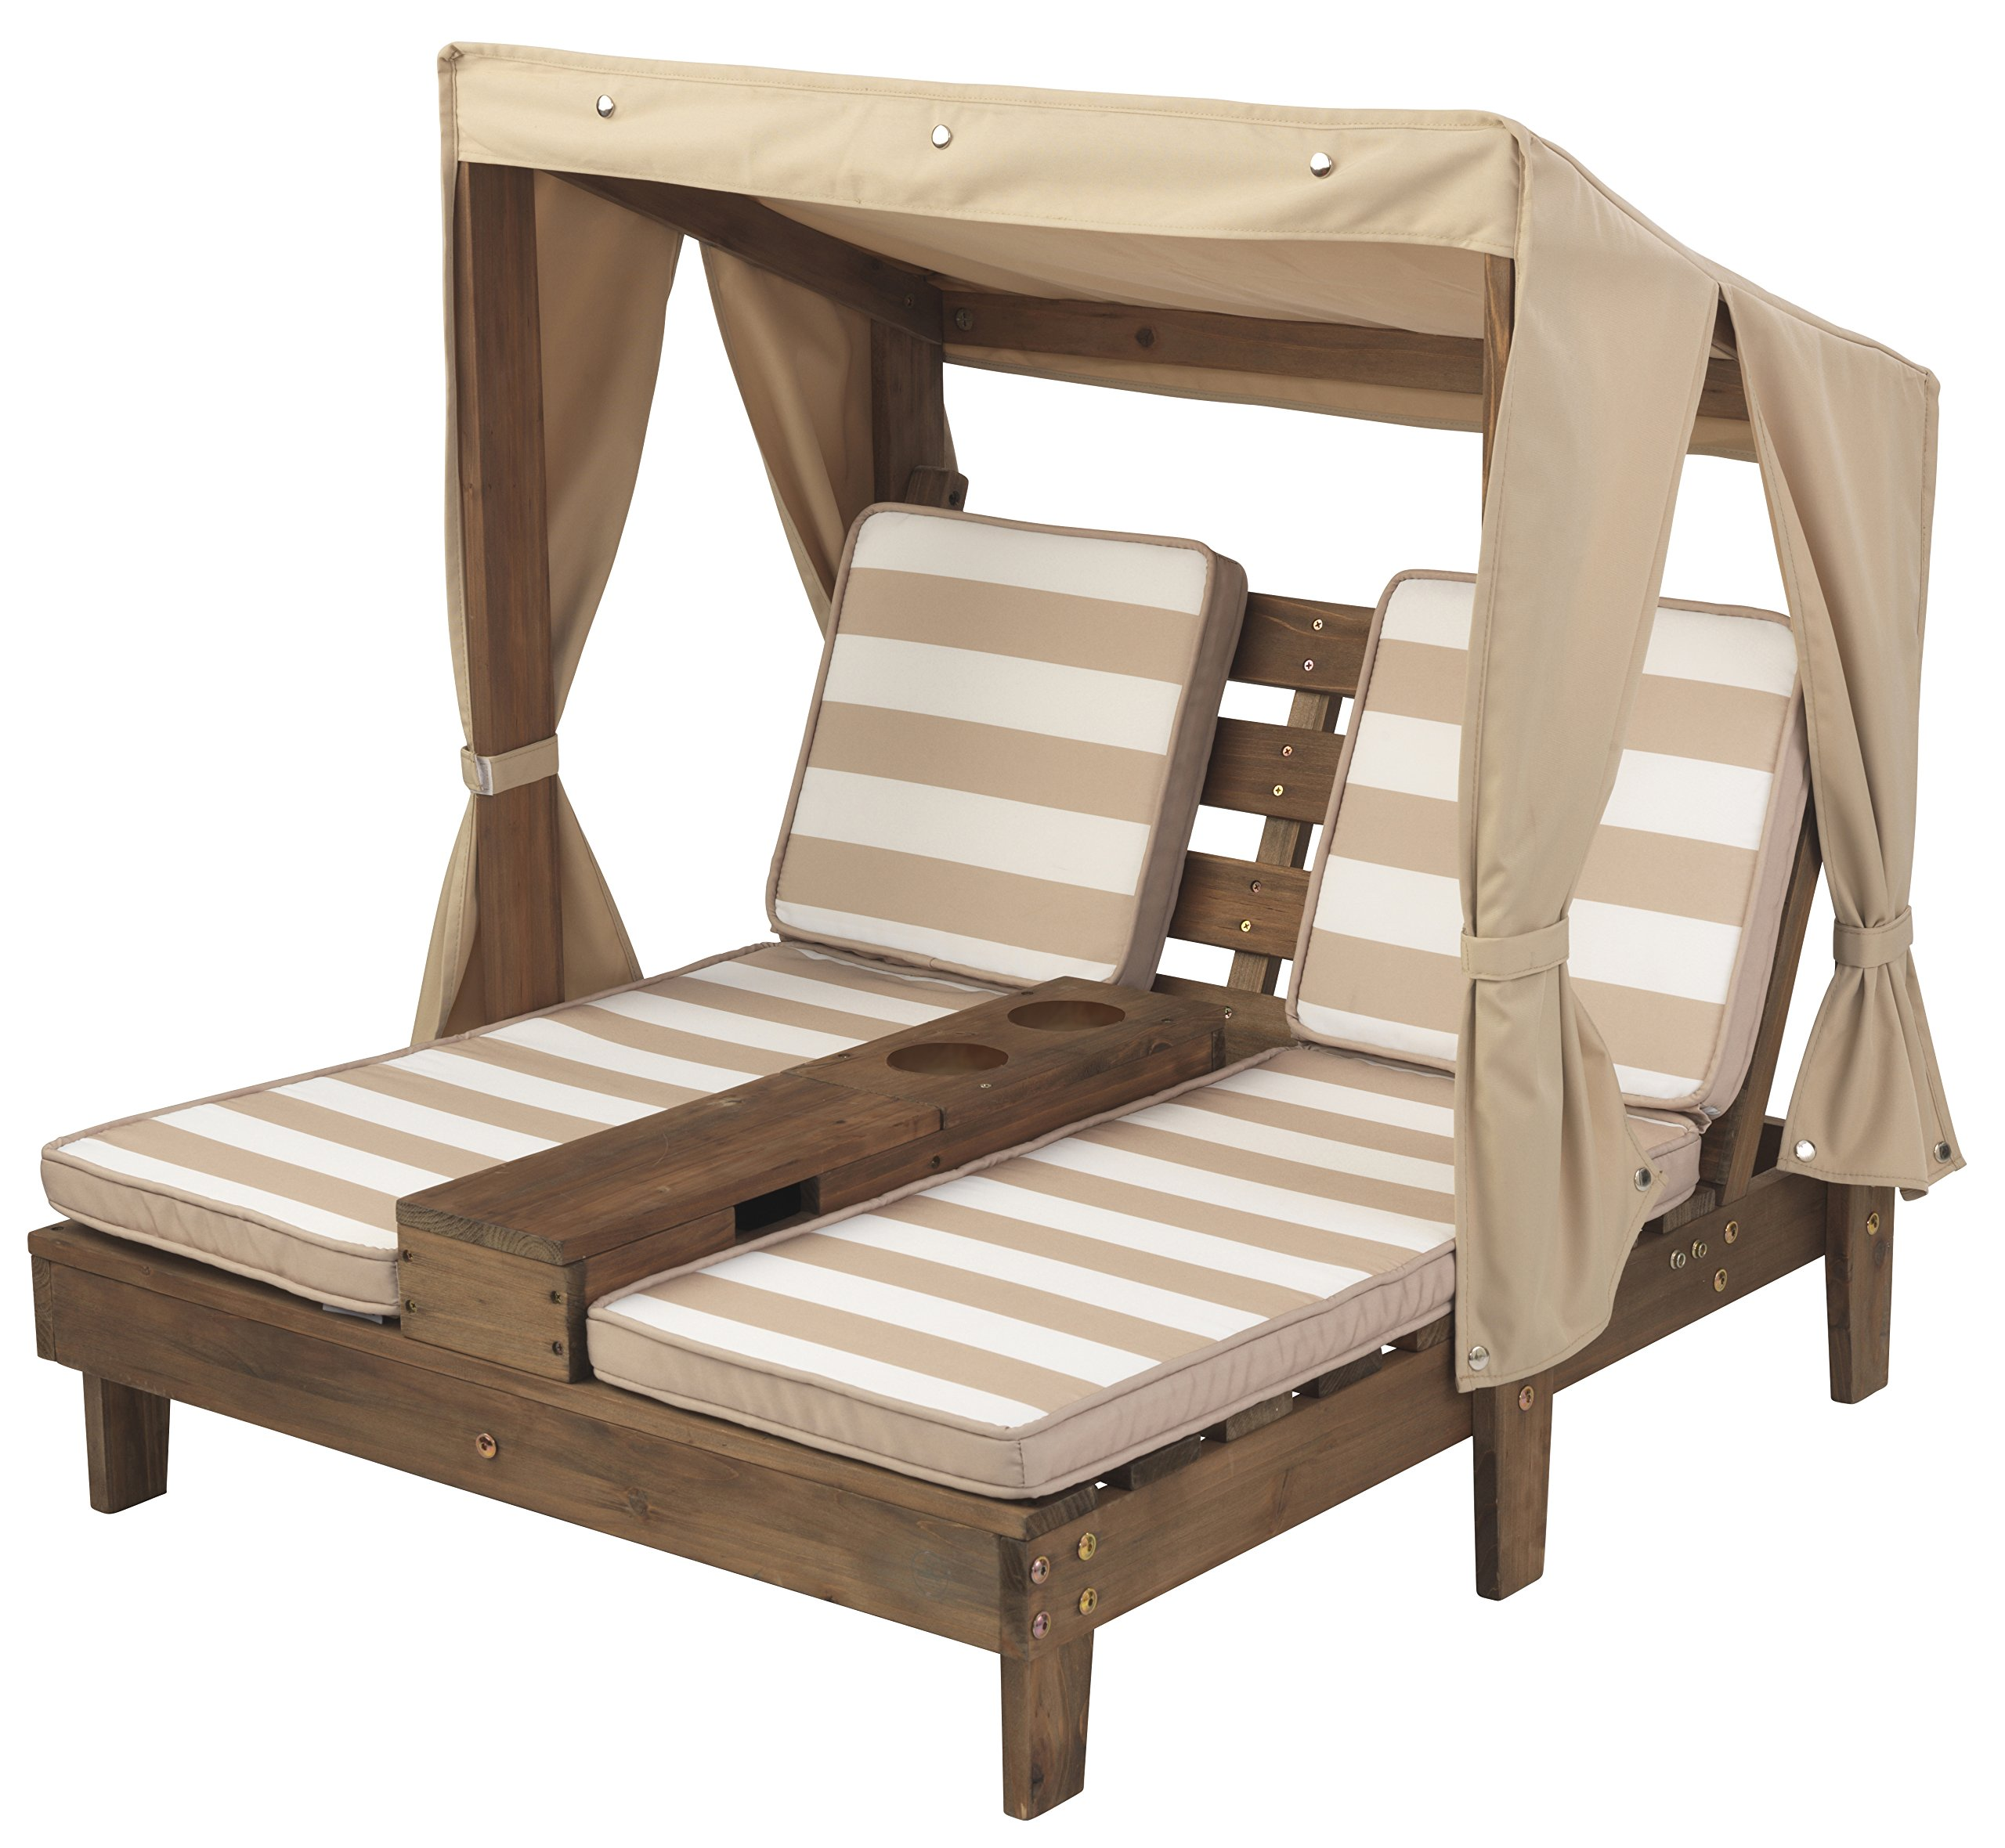 KidKraft Double Chaise Lounge with Cup Holders by KidKraft